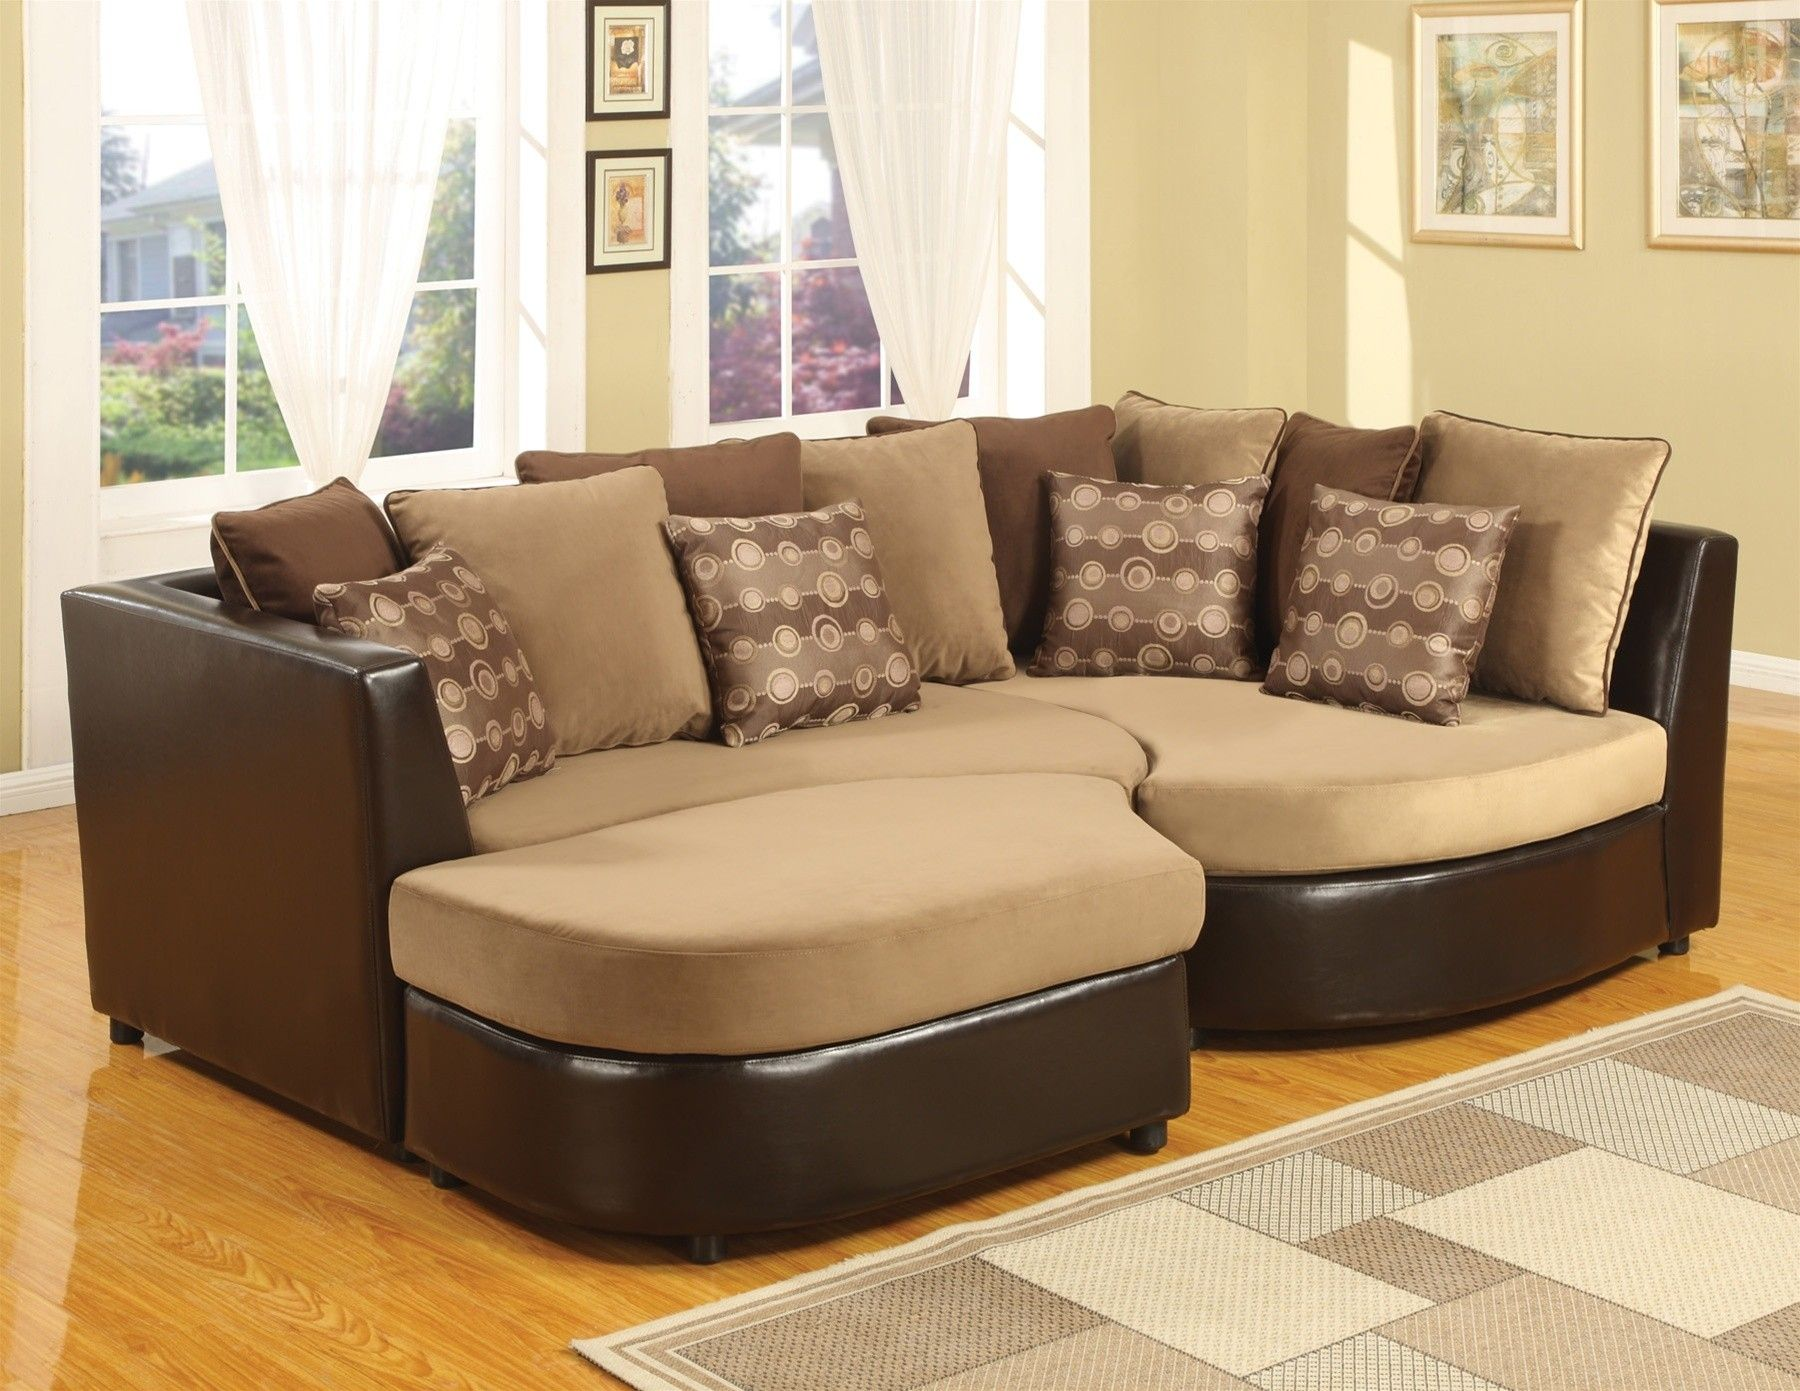 4 piece sectional puzzle sofa